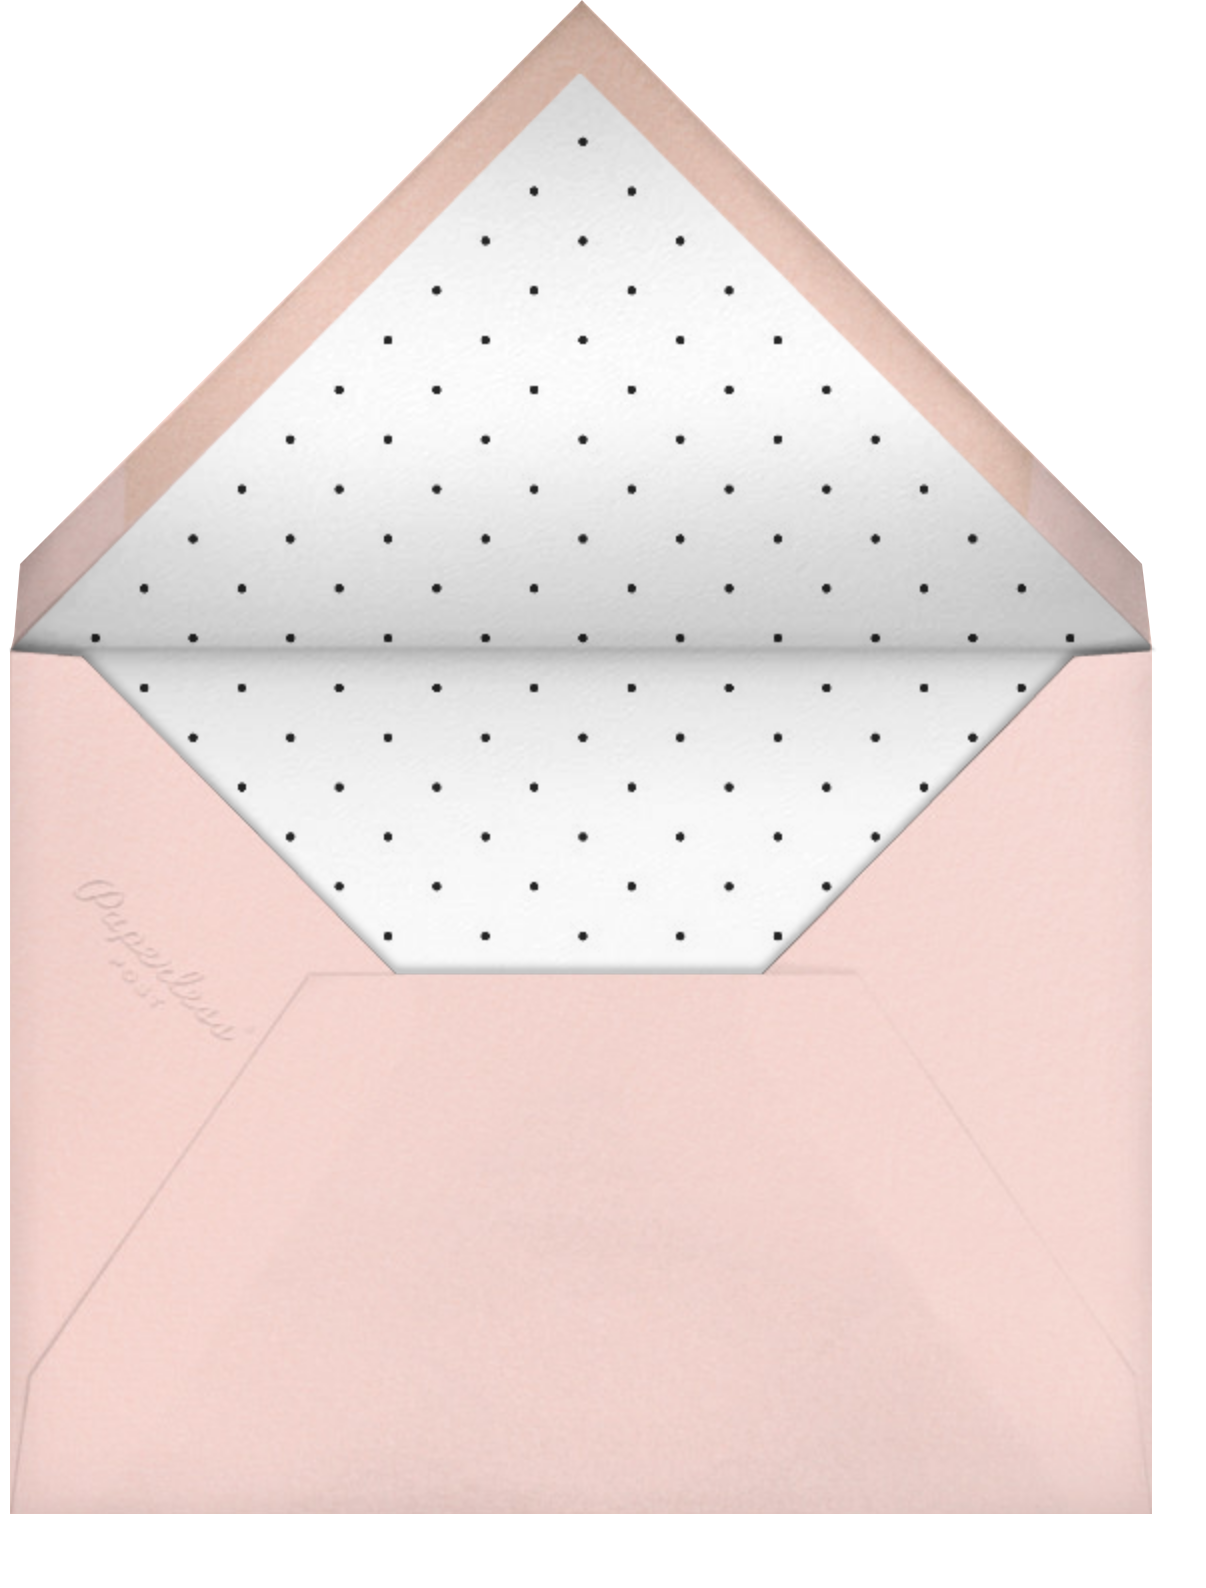 Painted Strawberry - kate spade new york - Kids' birthday - envelope back